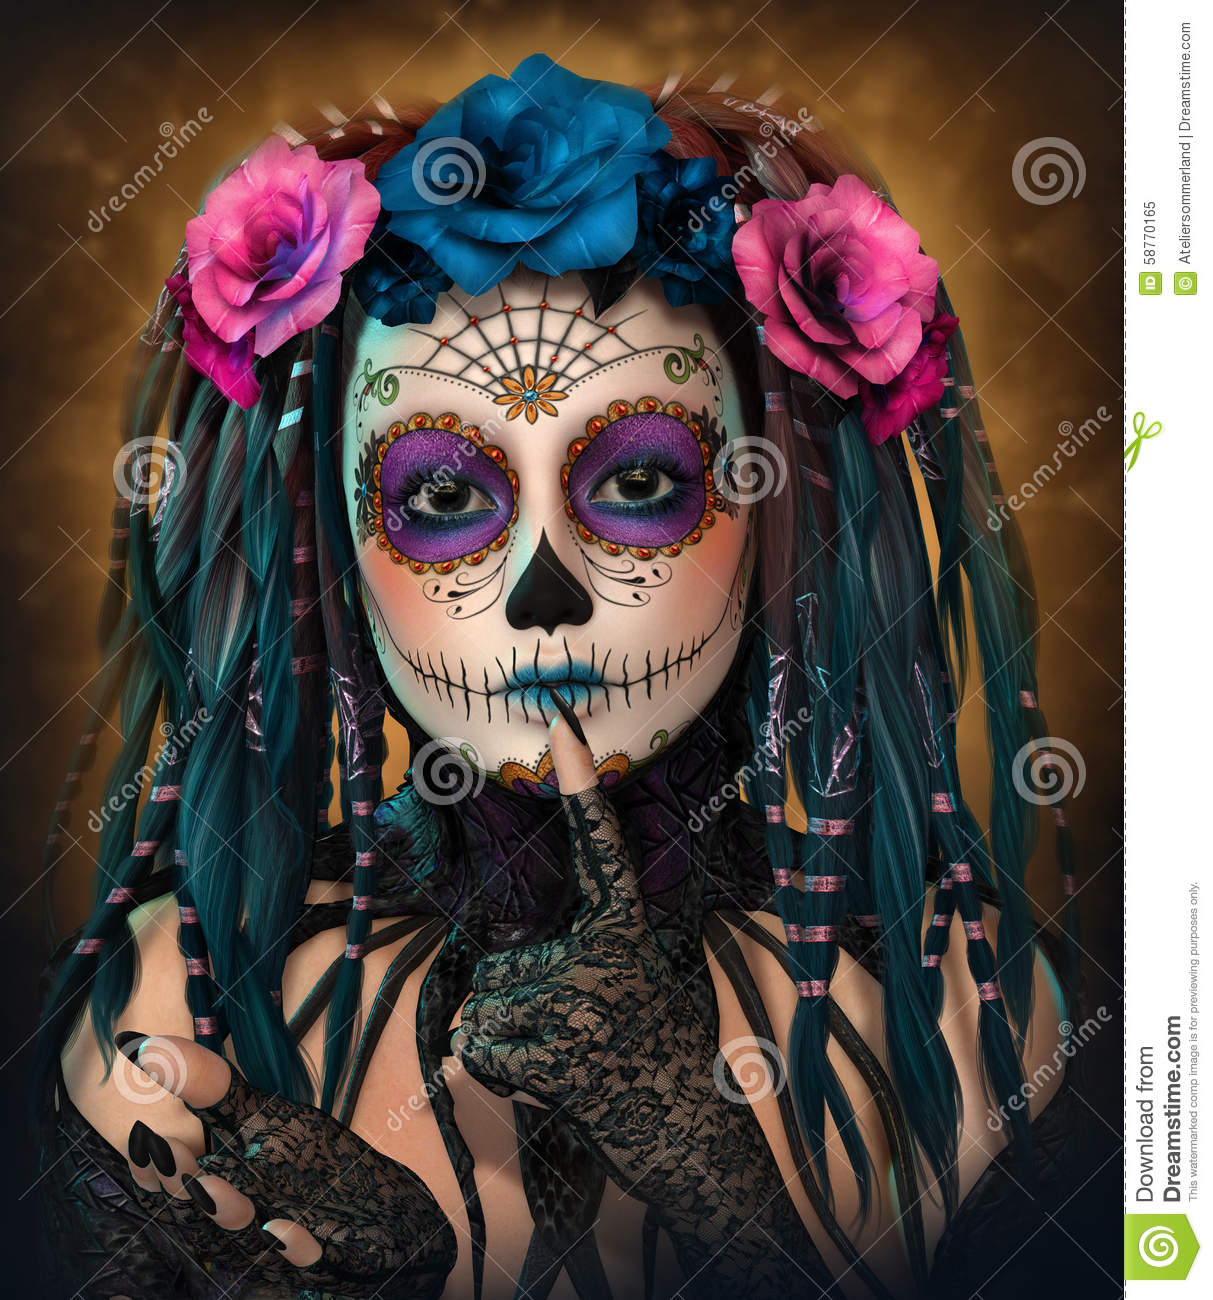 catrina girl 3d cg stock illustration illustration of mask 58770165. Black Bedroom Furniture Sets. Home Design Ideas